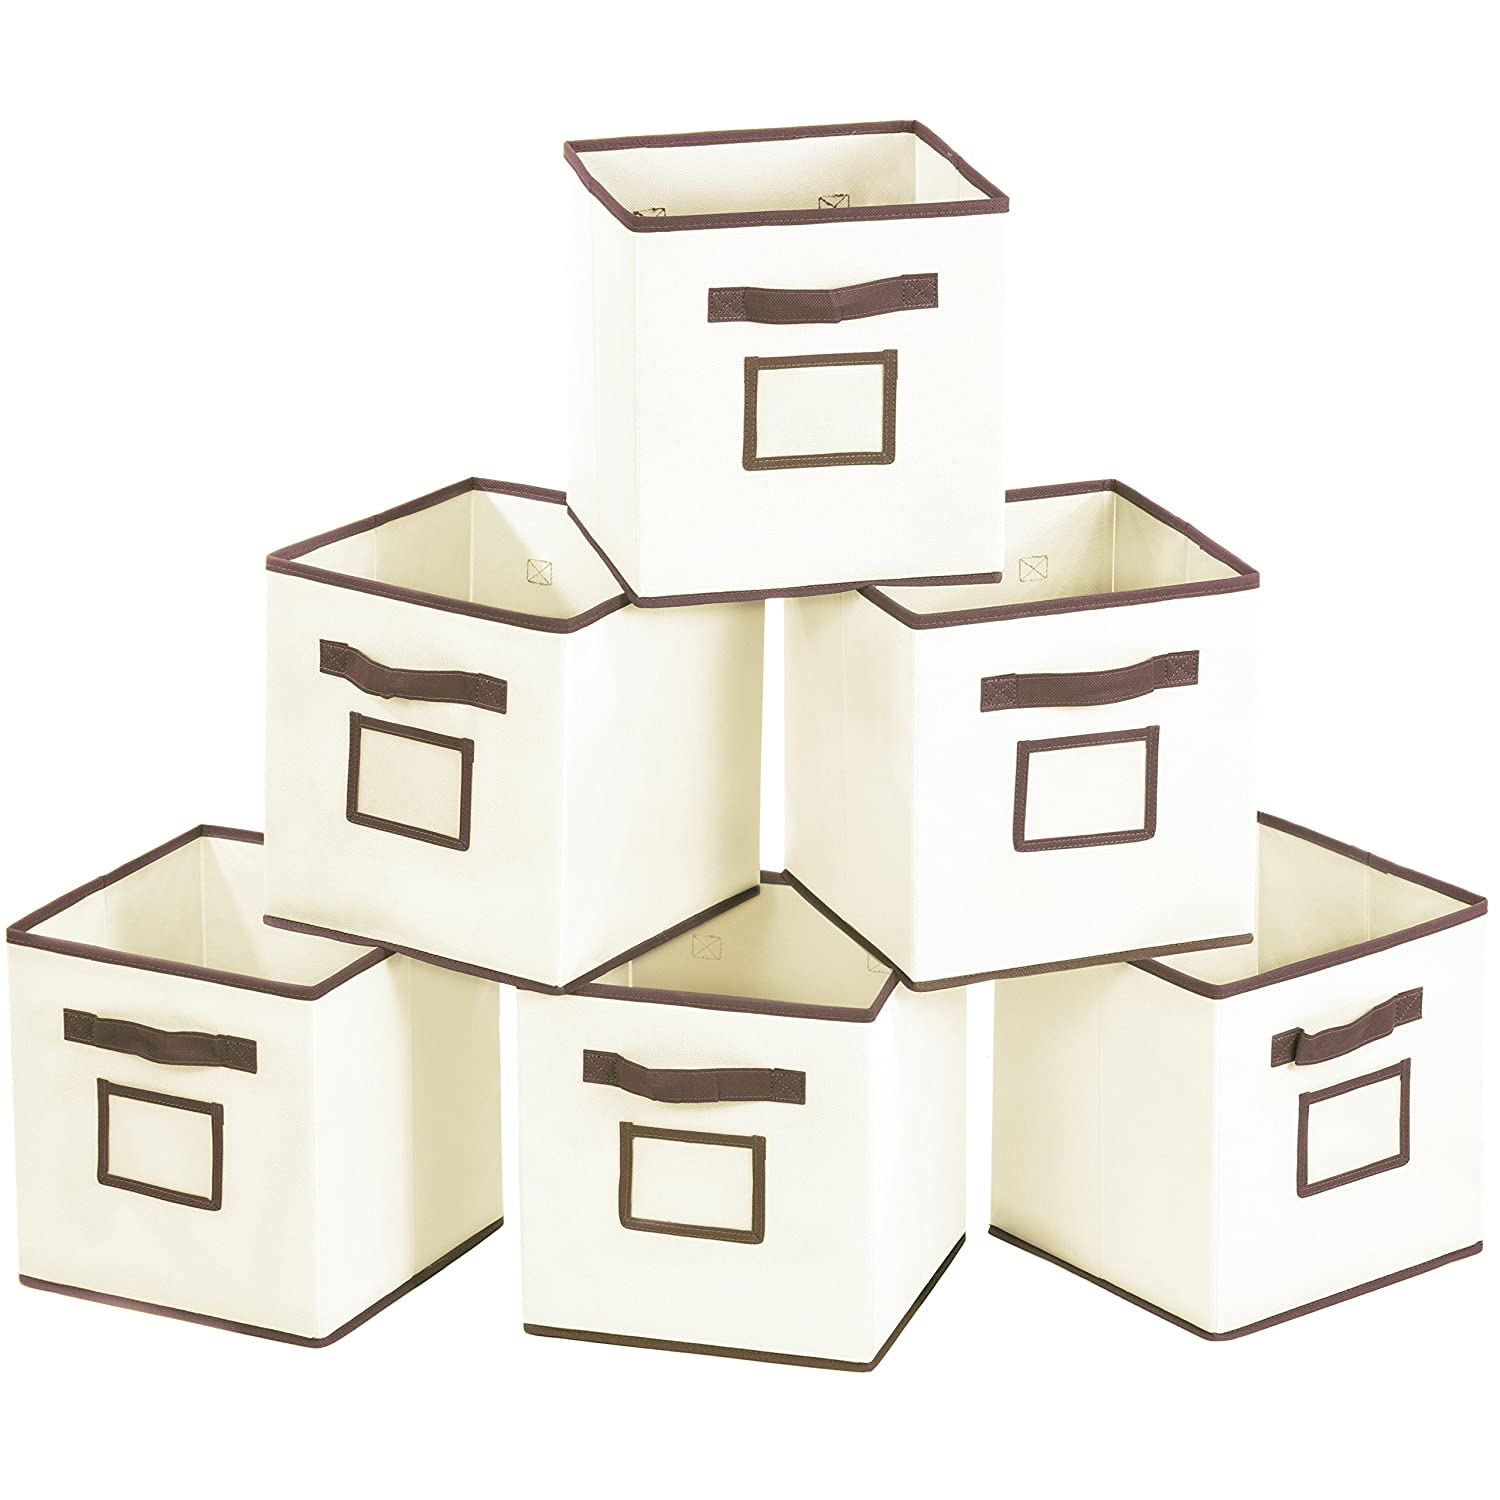 MaidMAX Foldable Storage Cubes with Label Holders and Dual Handles, Beige, Set of 6, 6 Sets 903030-1